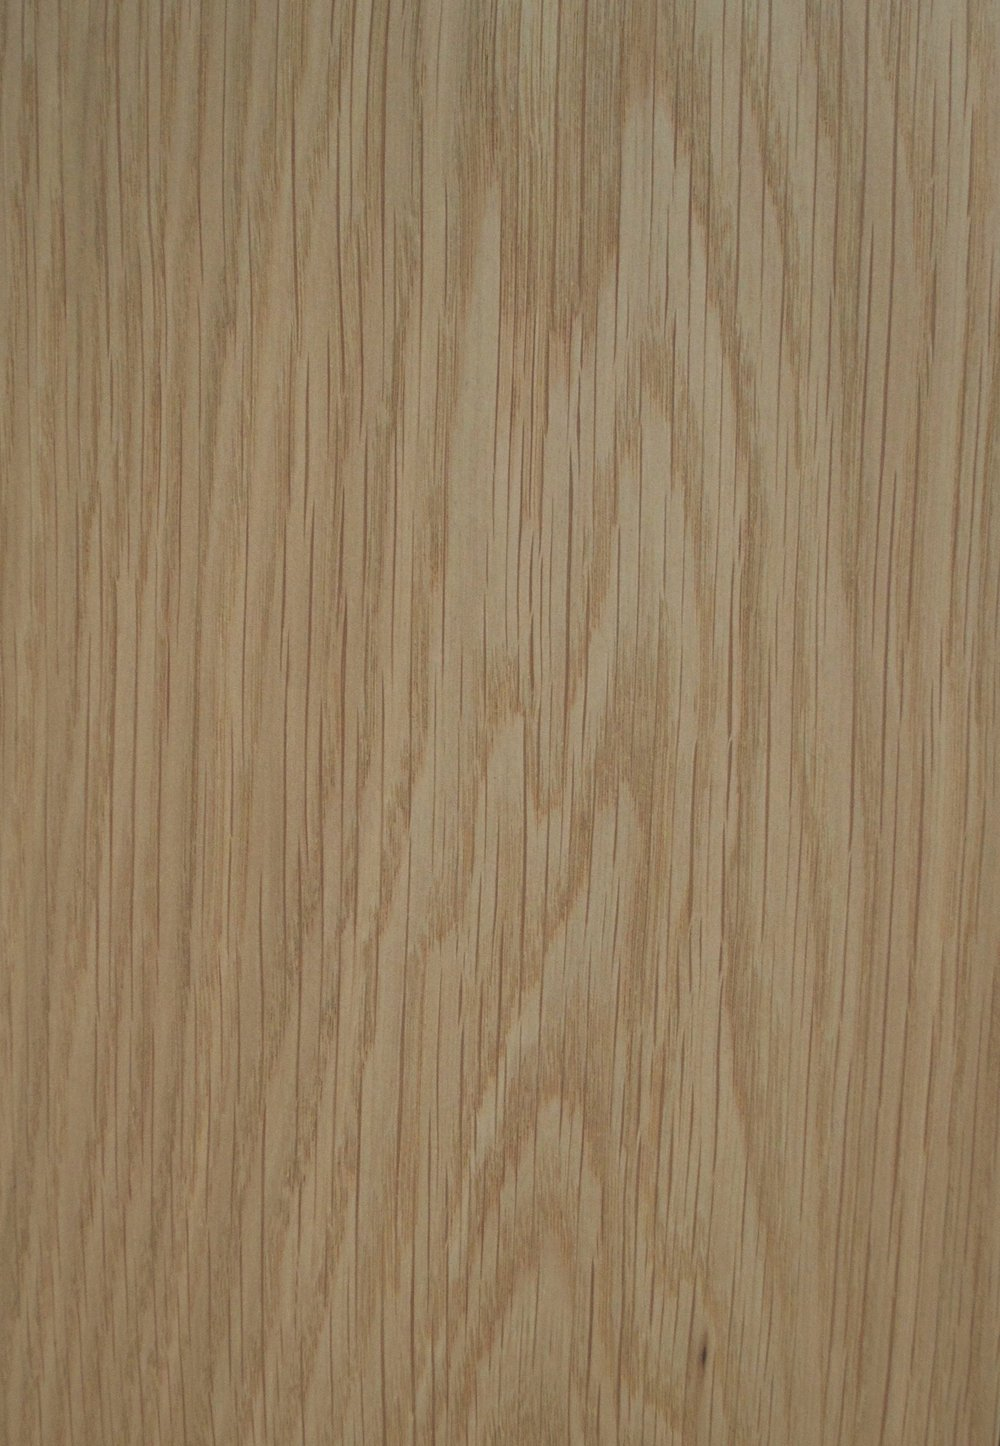 Matt natural oak